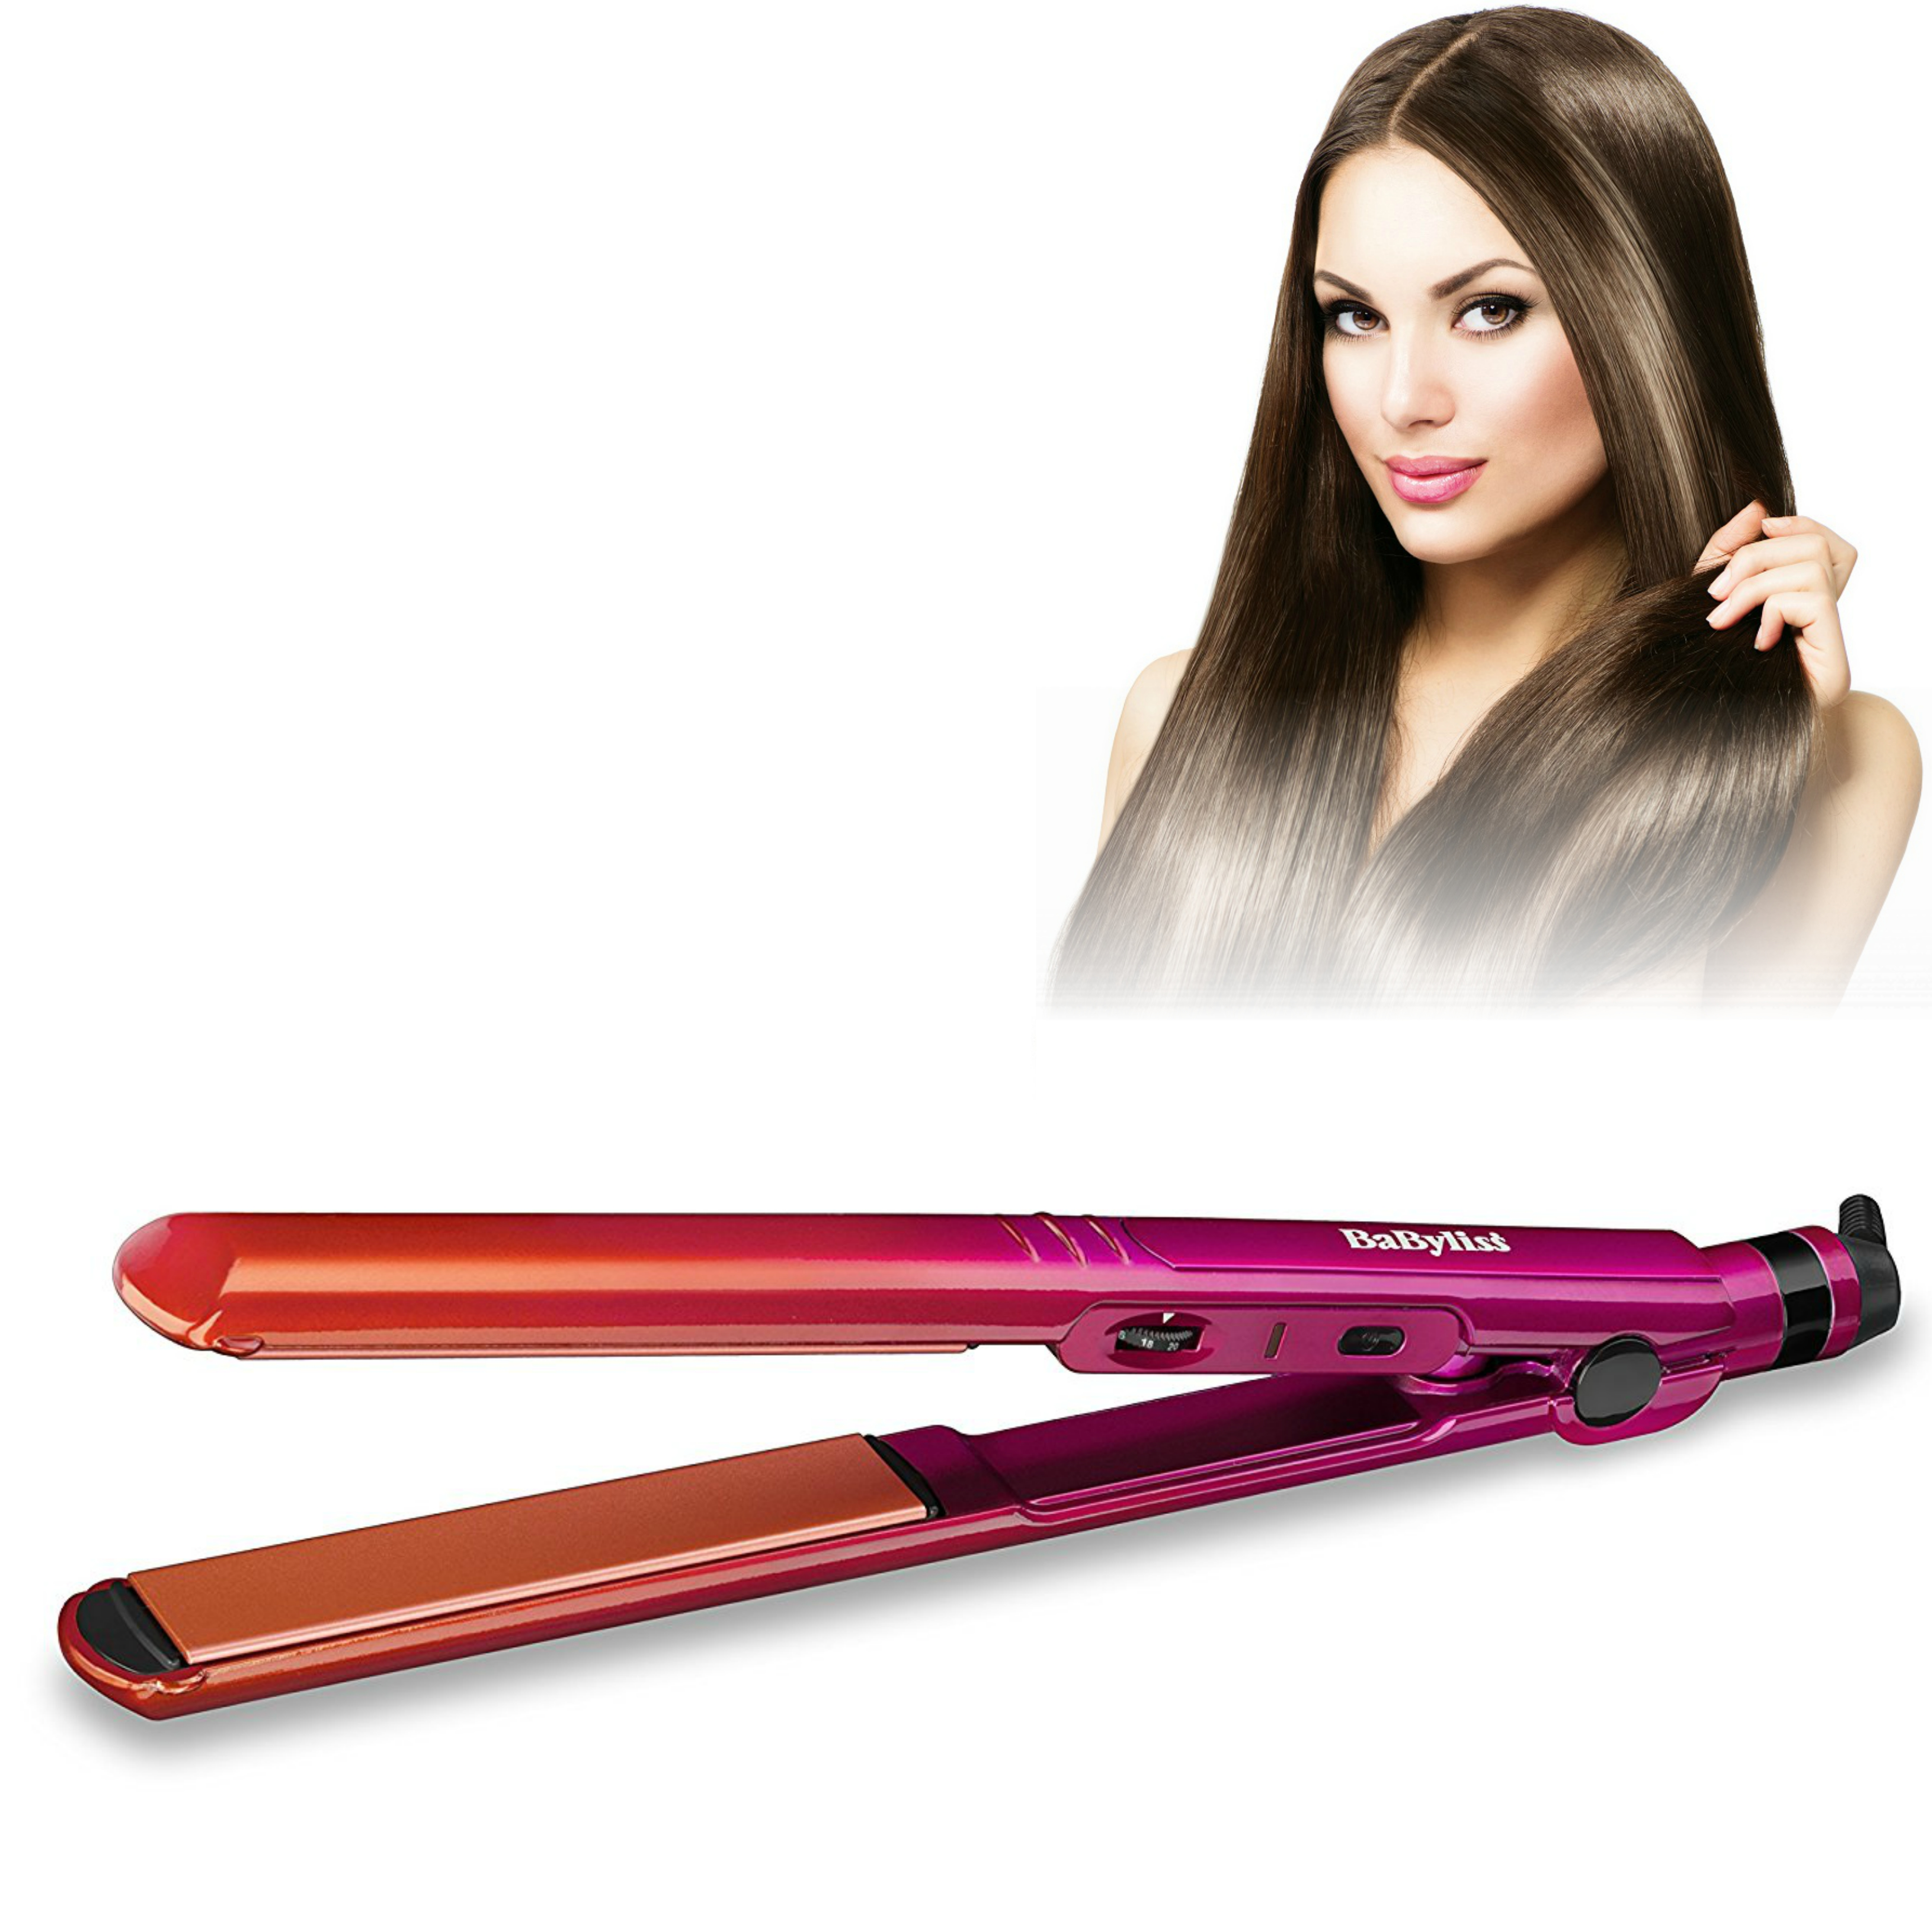 Babyliss 2084U Ombre Straightener|Multi Voltage|Titanium-Ceramic Finish|235°C